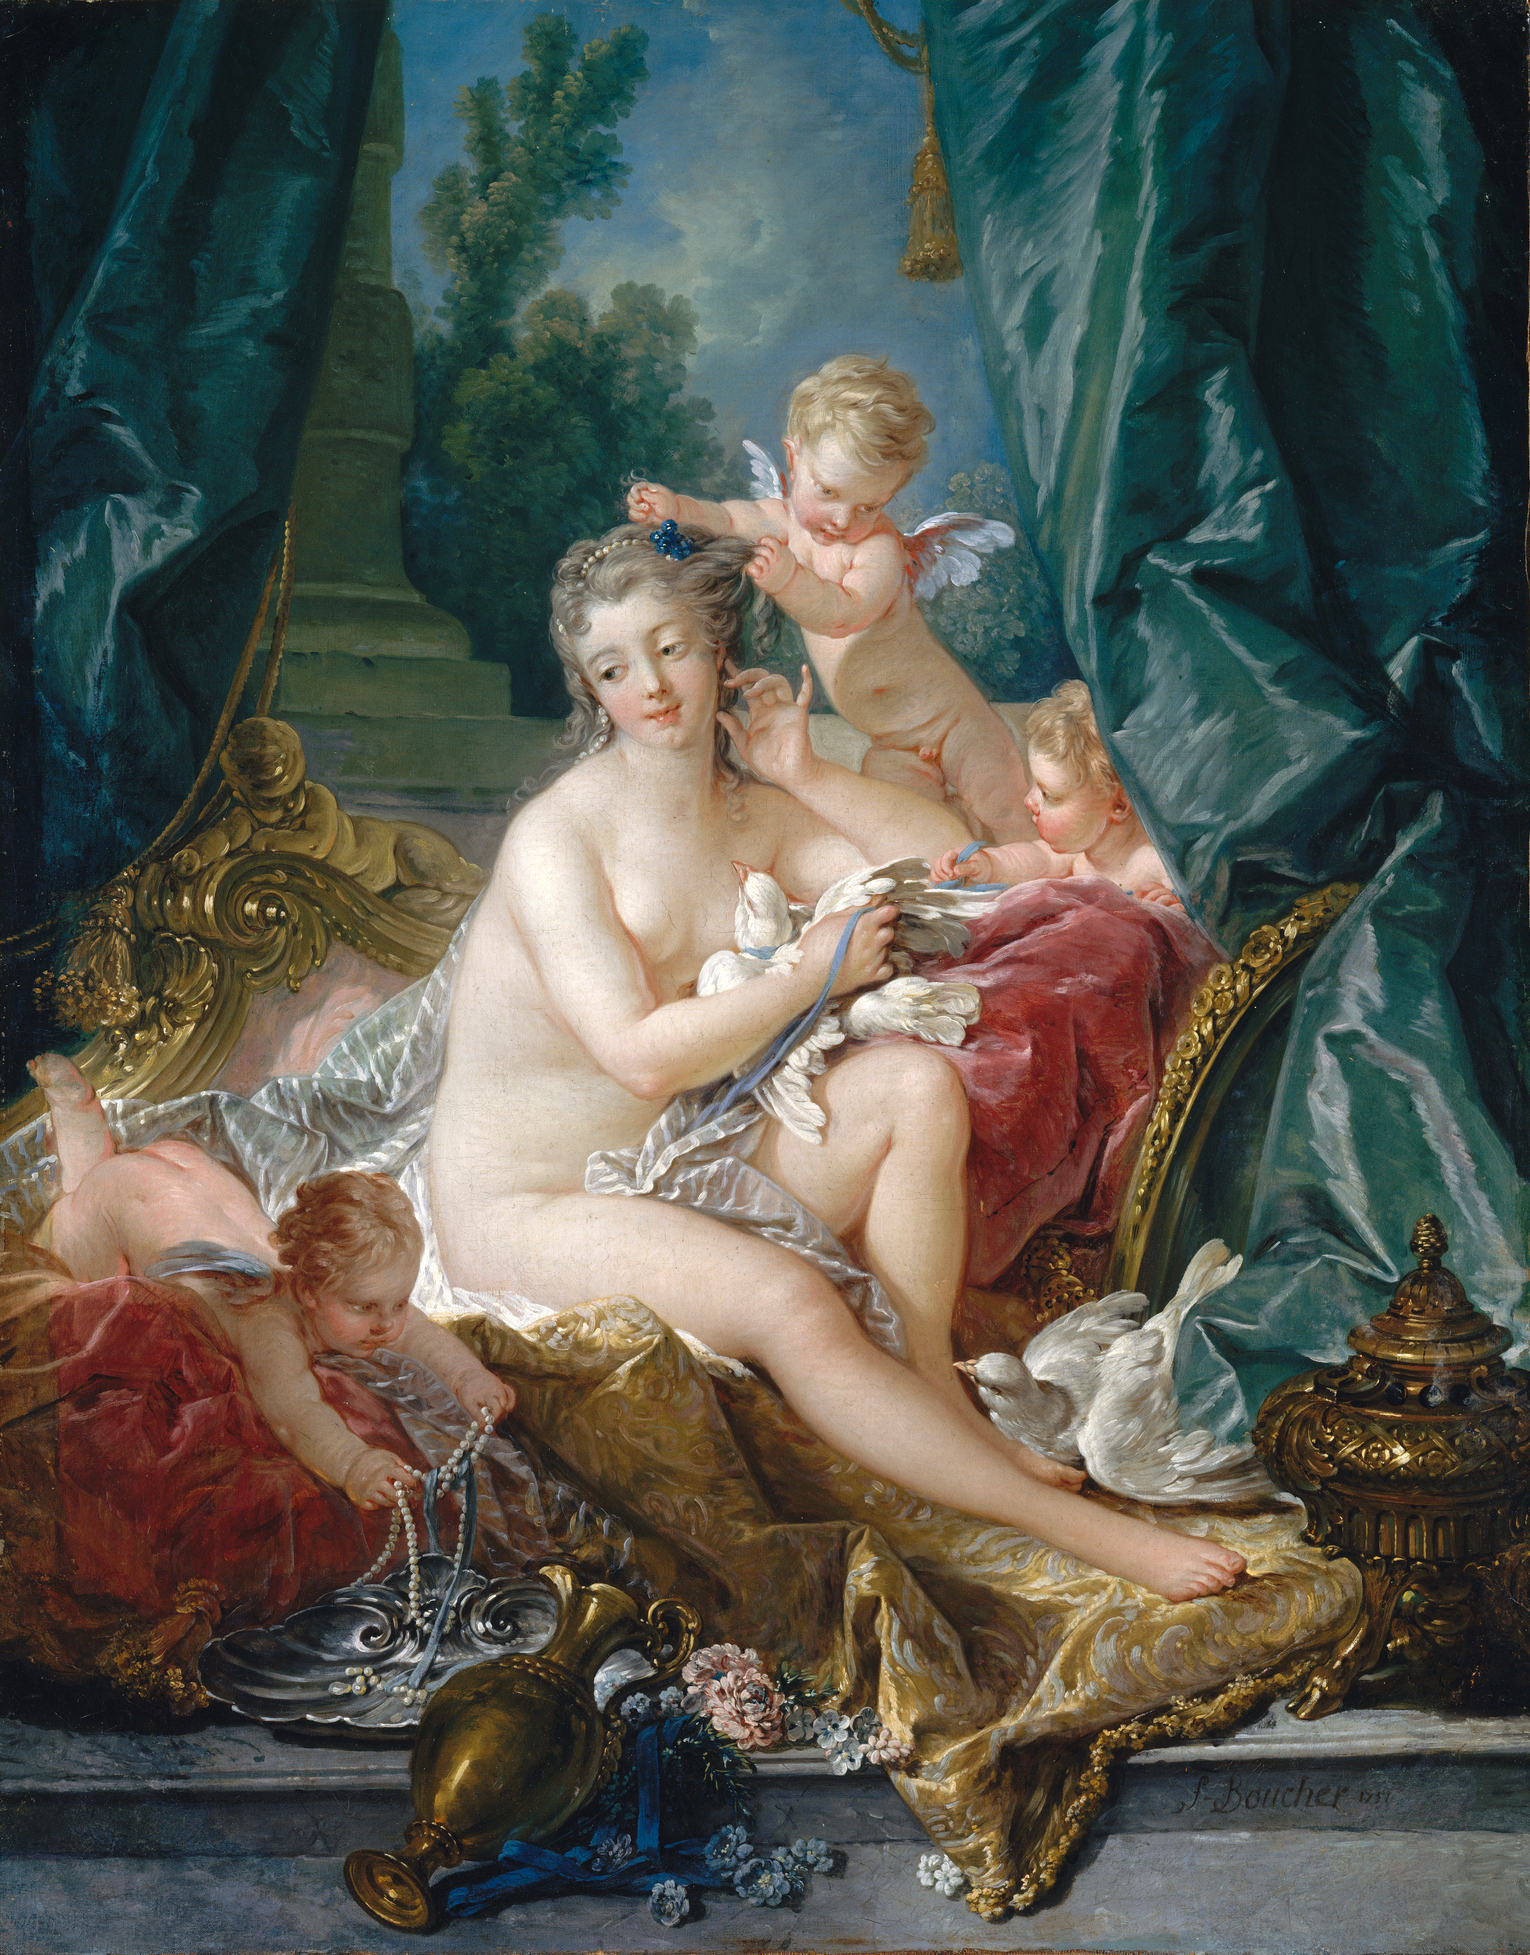 rococo art movement the toilette of venus by françois boucher